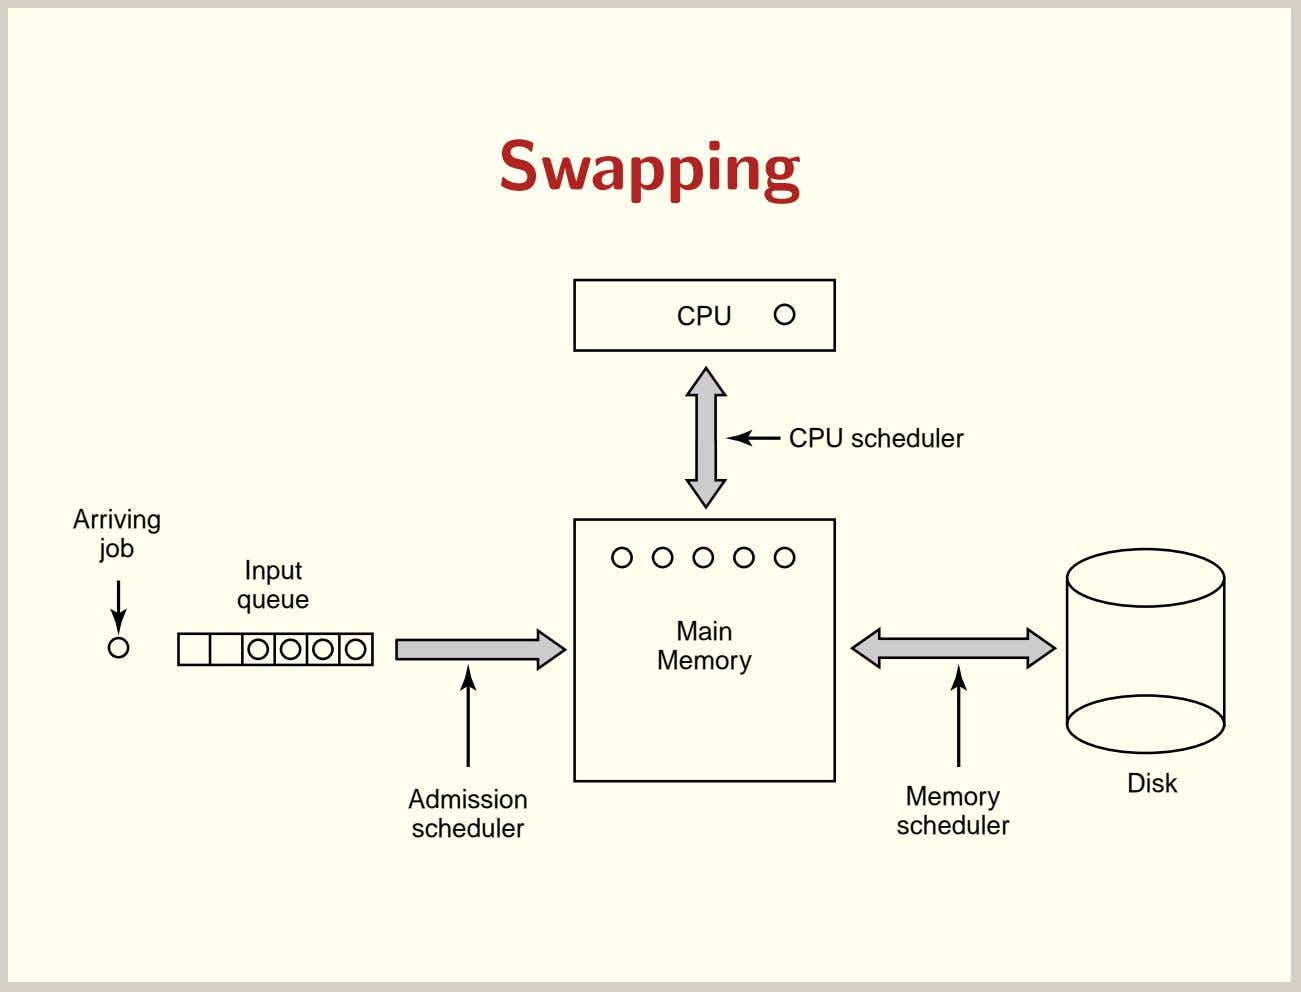 Swapping CPU CPU scheduler Arriving job Input queue Main Memory Disk Admission Memory scheduler scheduler